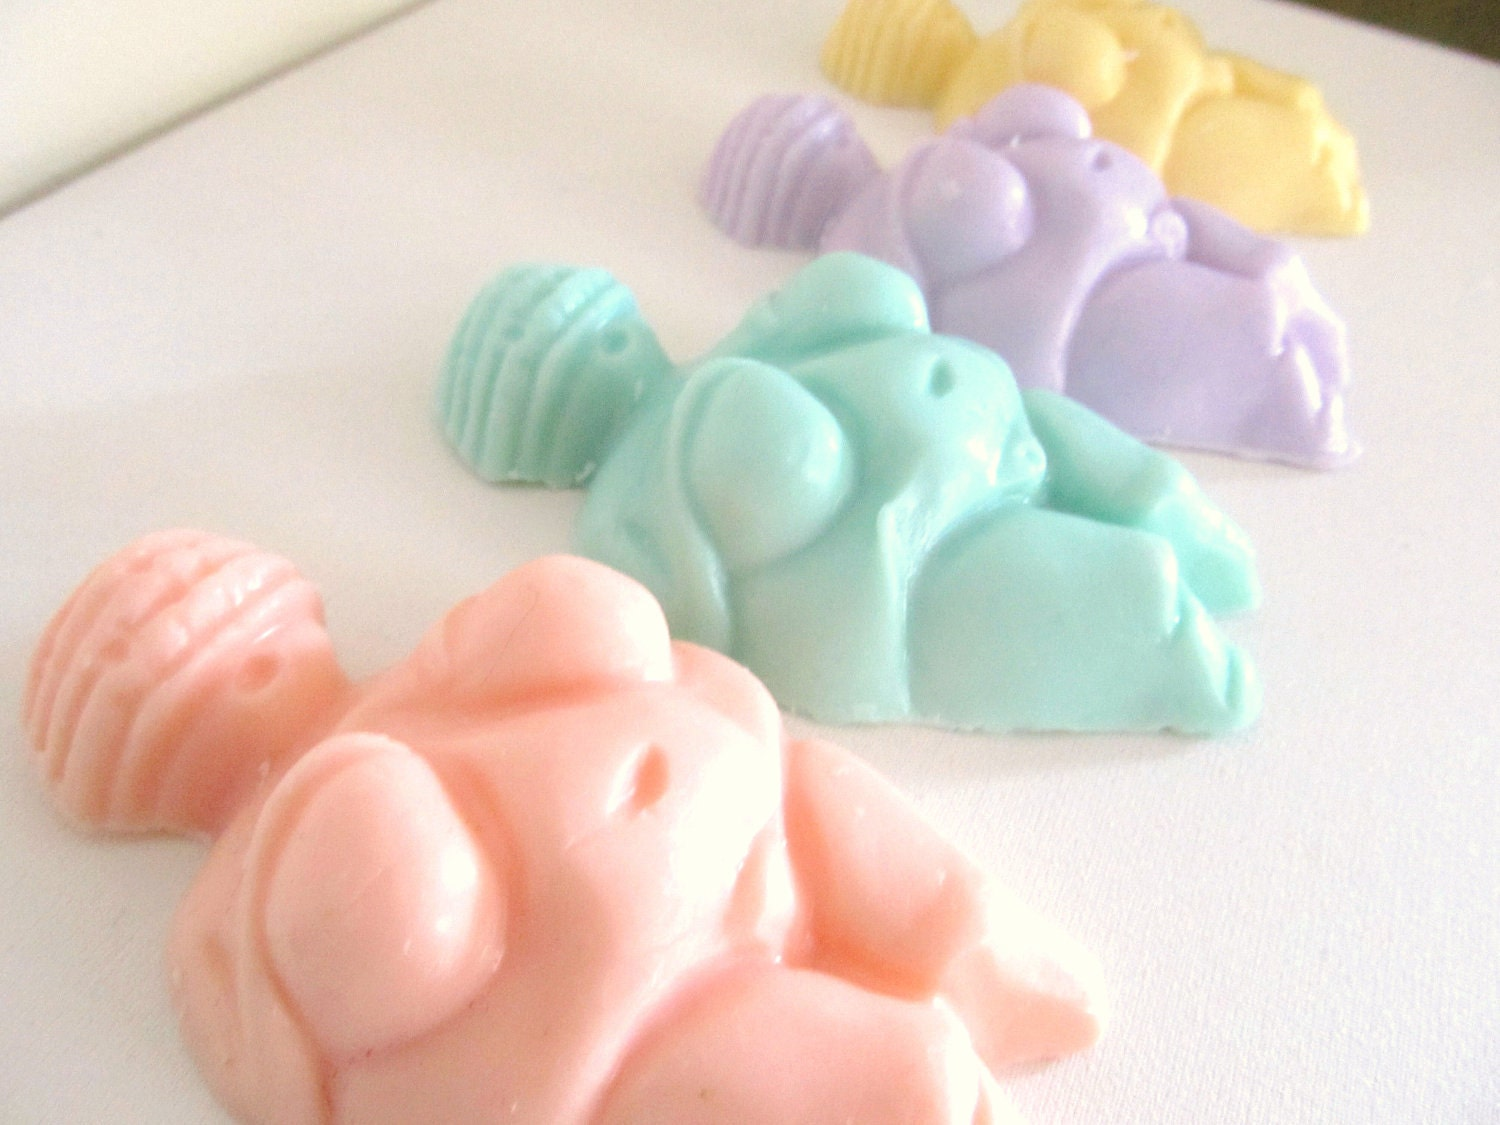 10 baby shower favors soaps gift set by kitschandfancy on etsy